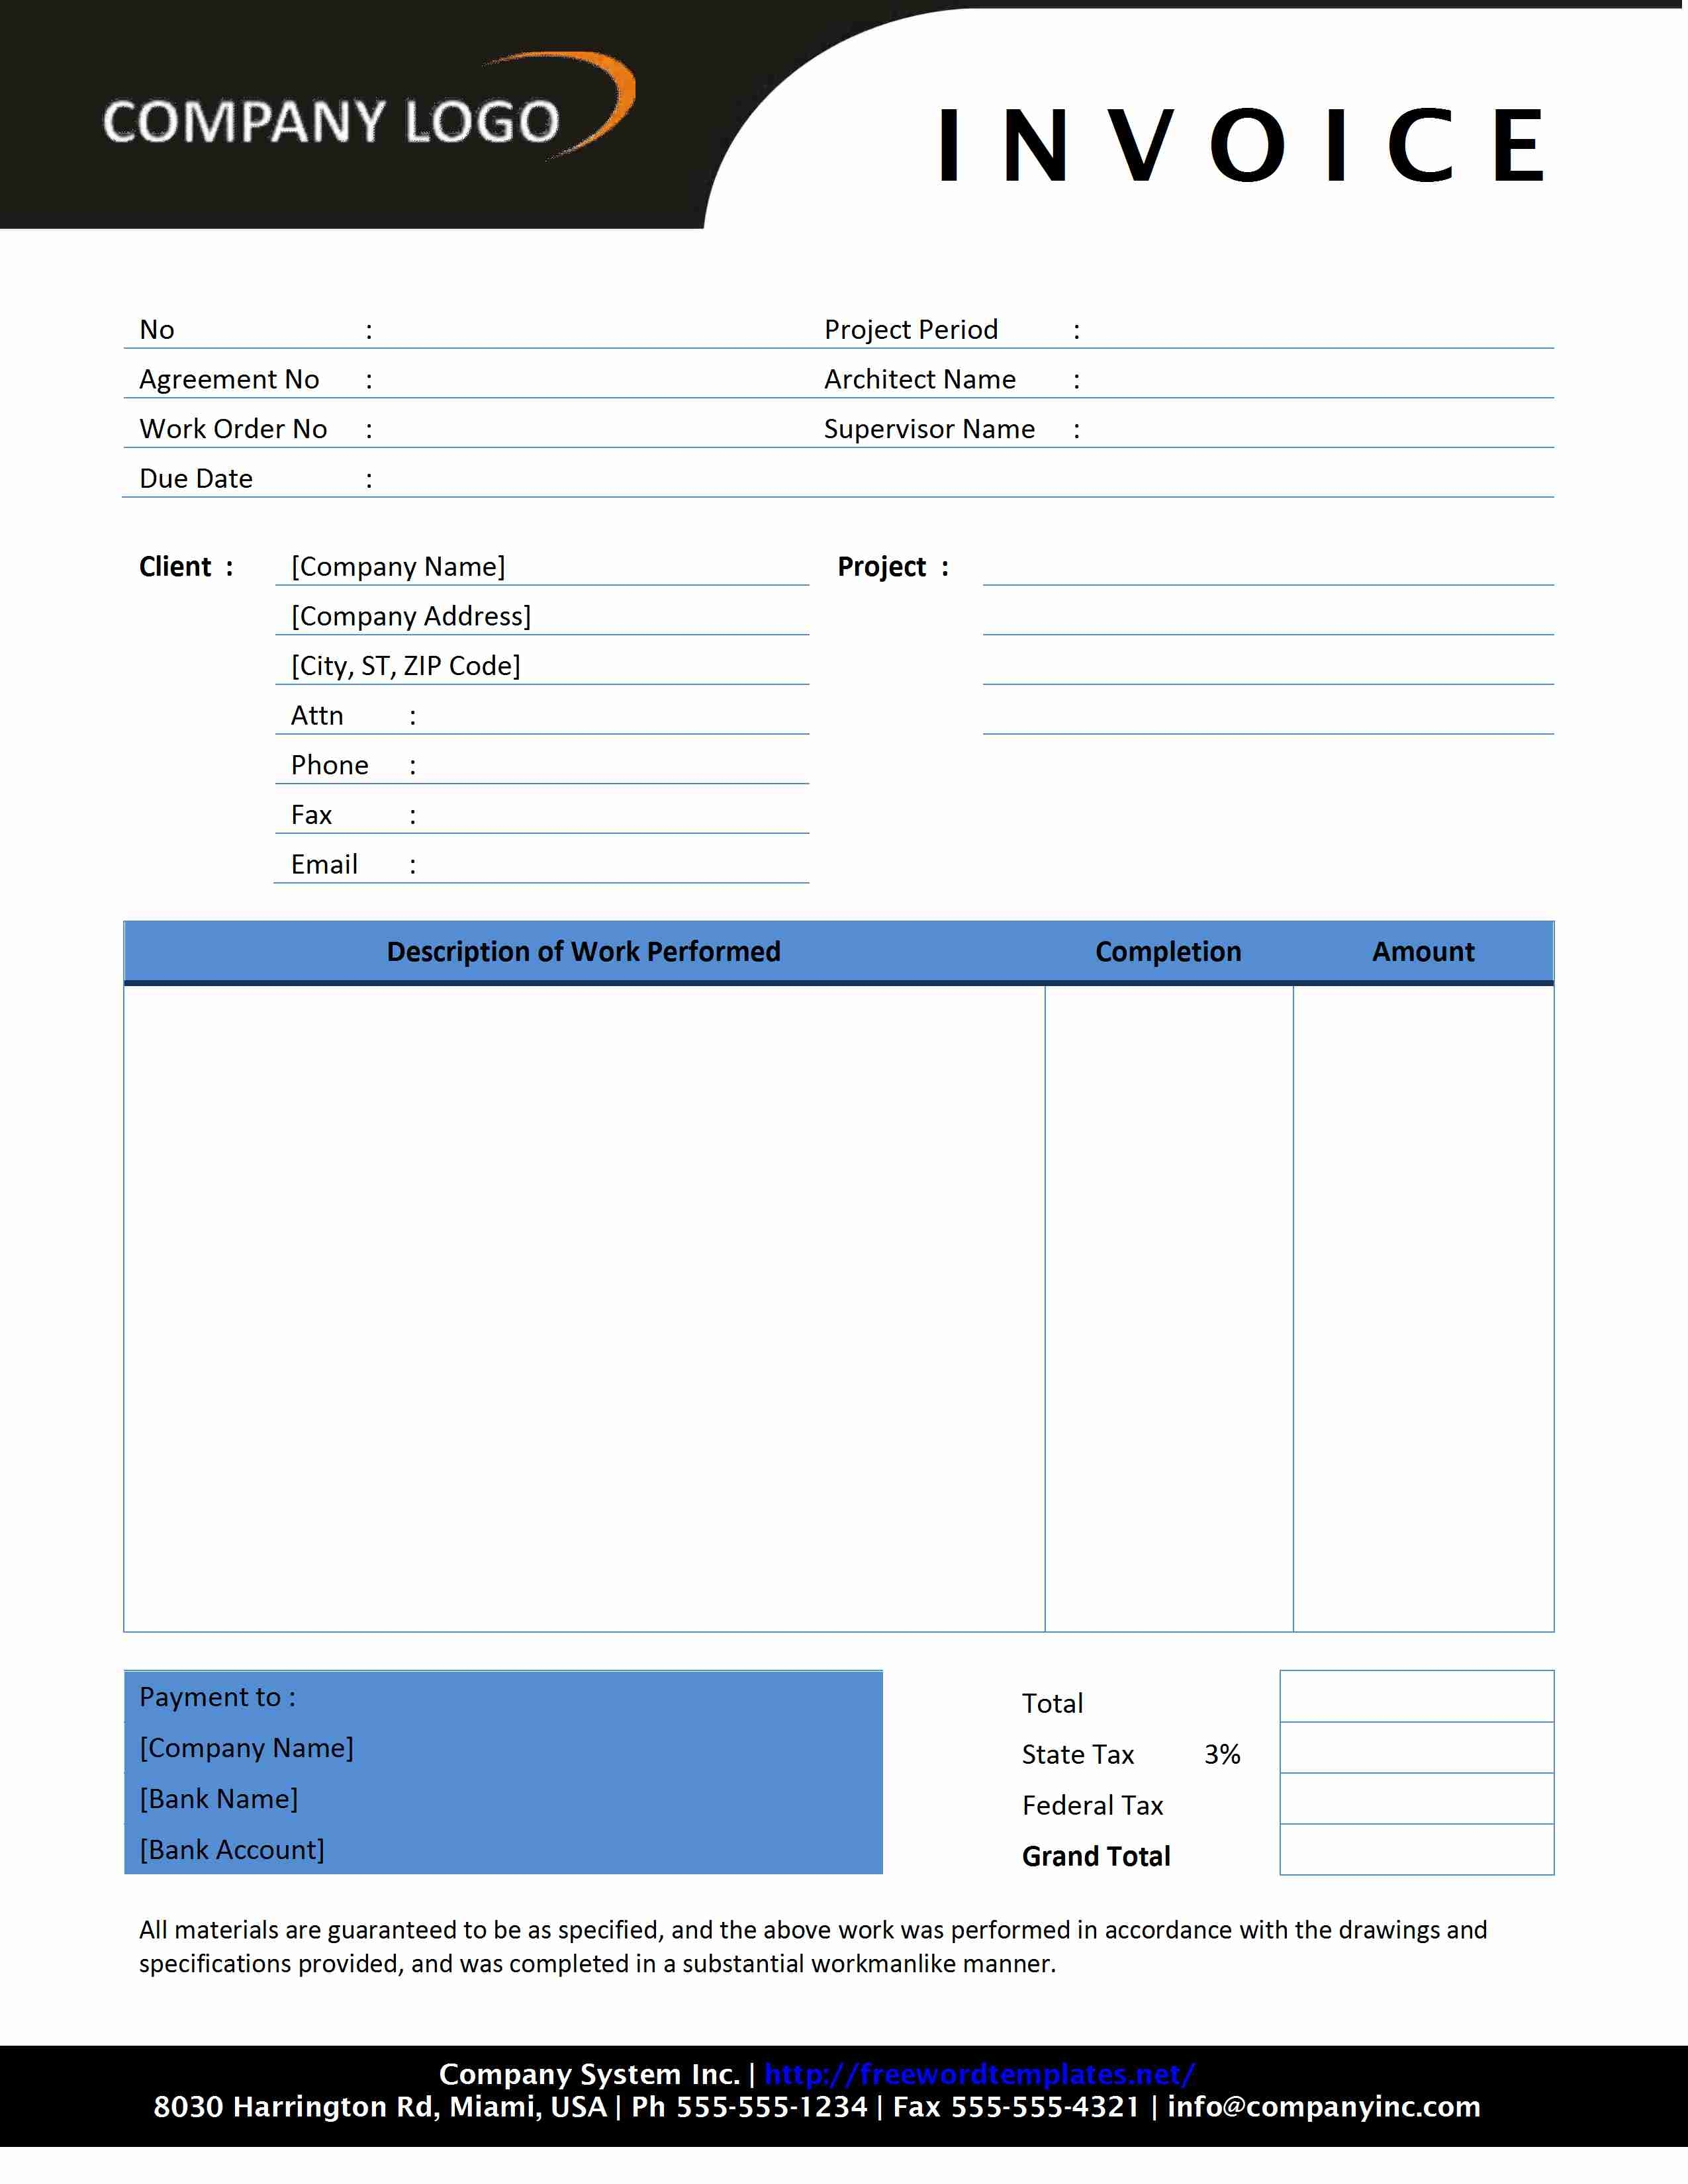 pro forma invoice meaning invoice template ideas performa invoice means